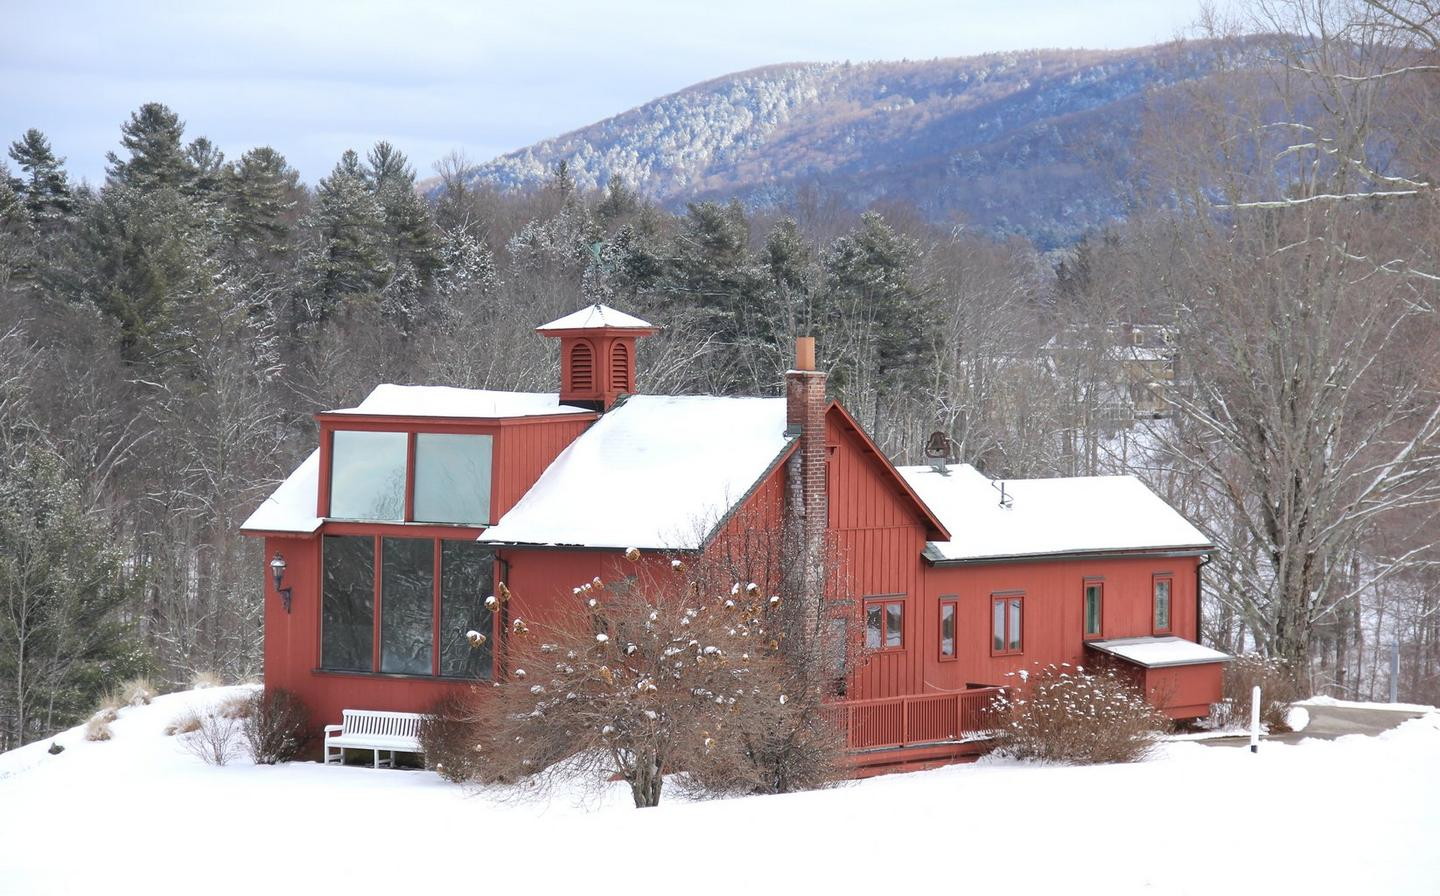 A large, red painted wooden cabin on a snowy hillside, surrounded by forest.